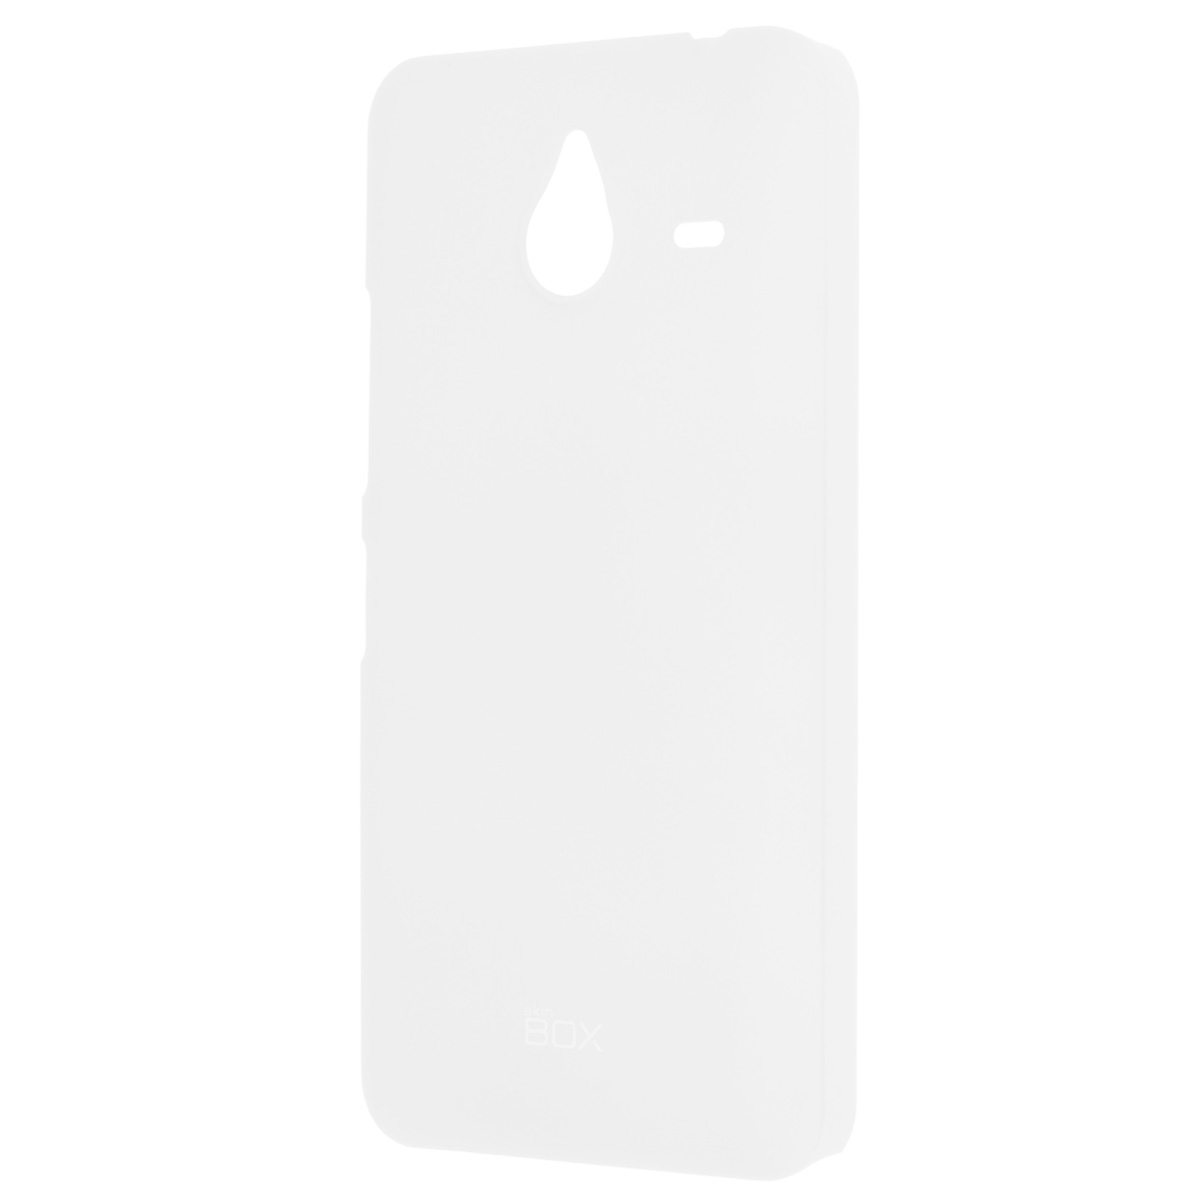 Skinbox Shield 4People чехол для Microsoft Lumia 640XL, White